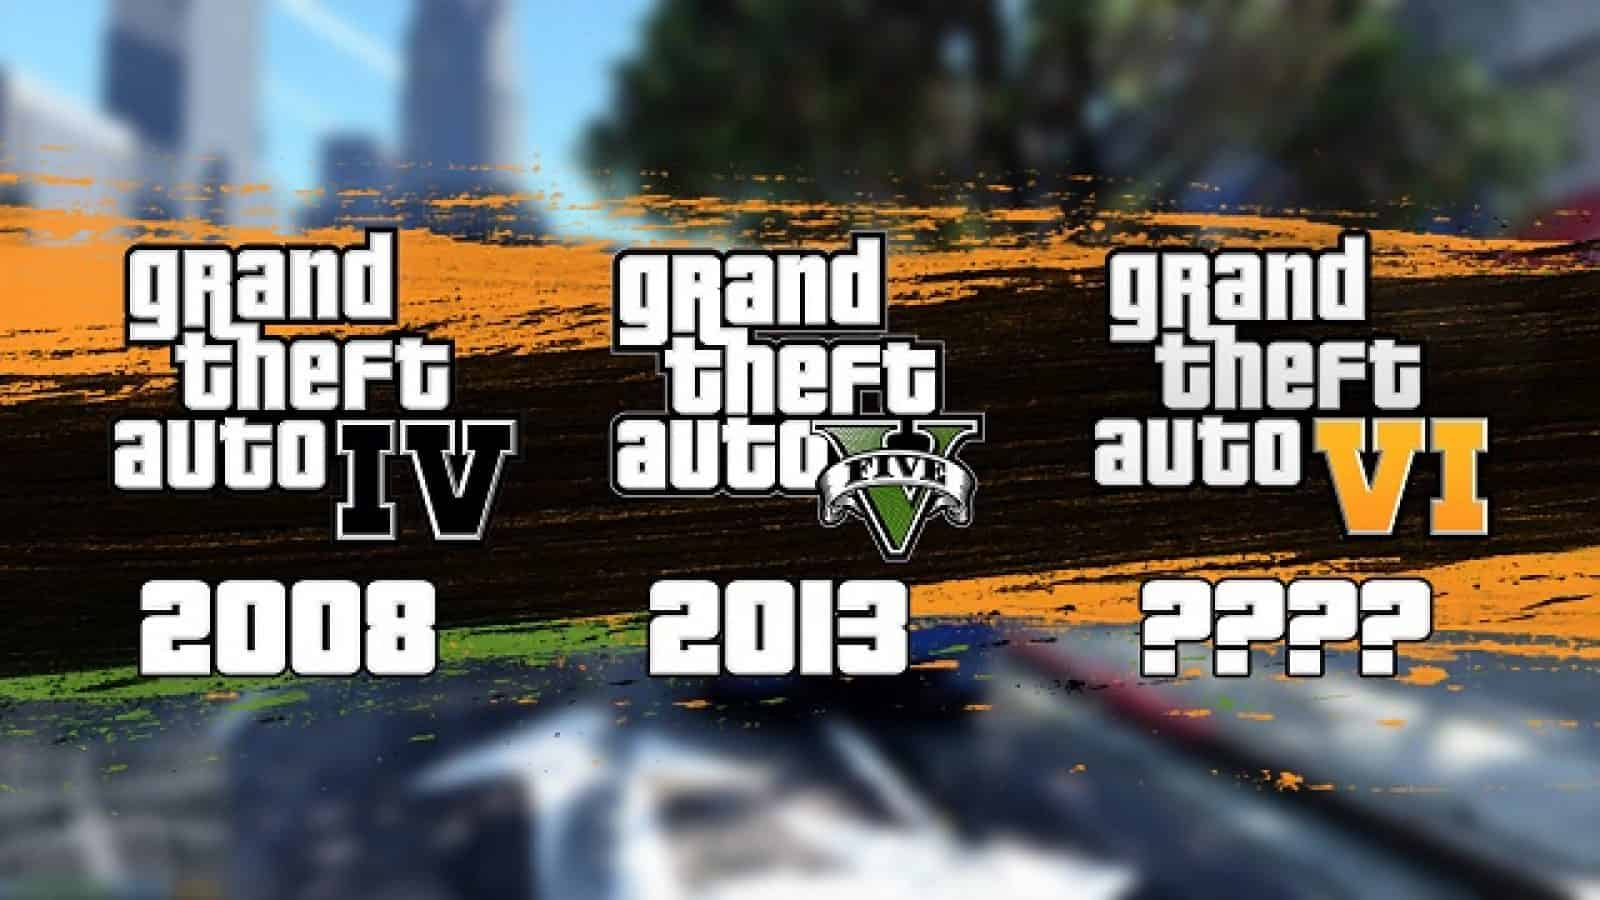 When will GTA 6 be released? Comparing previous GTA games